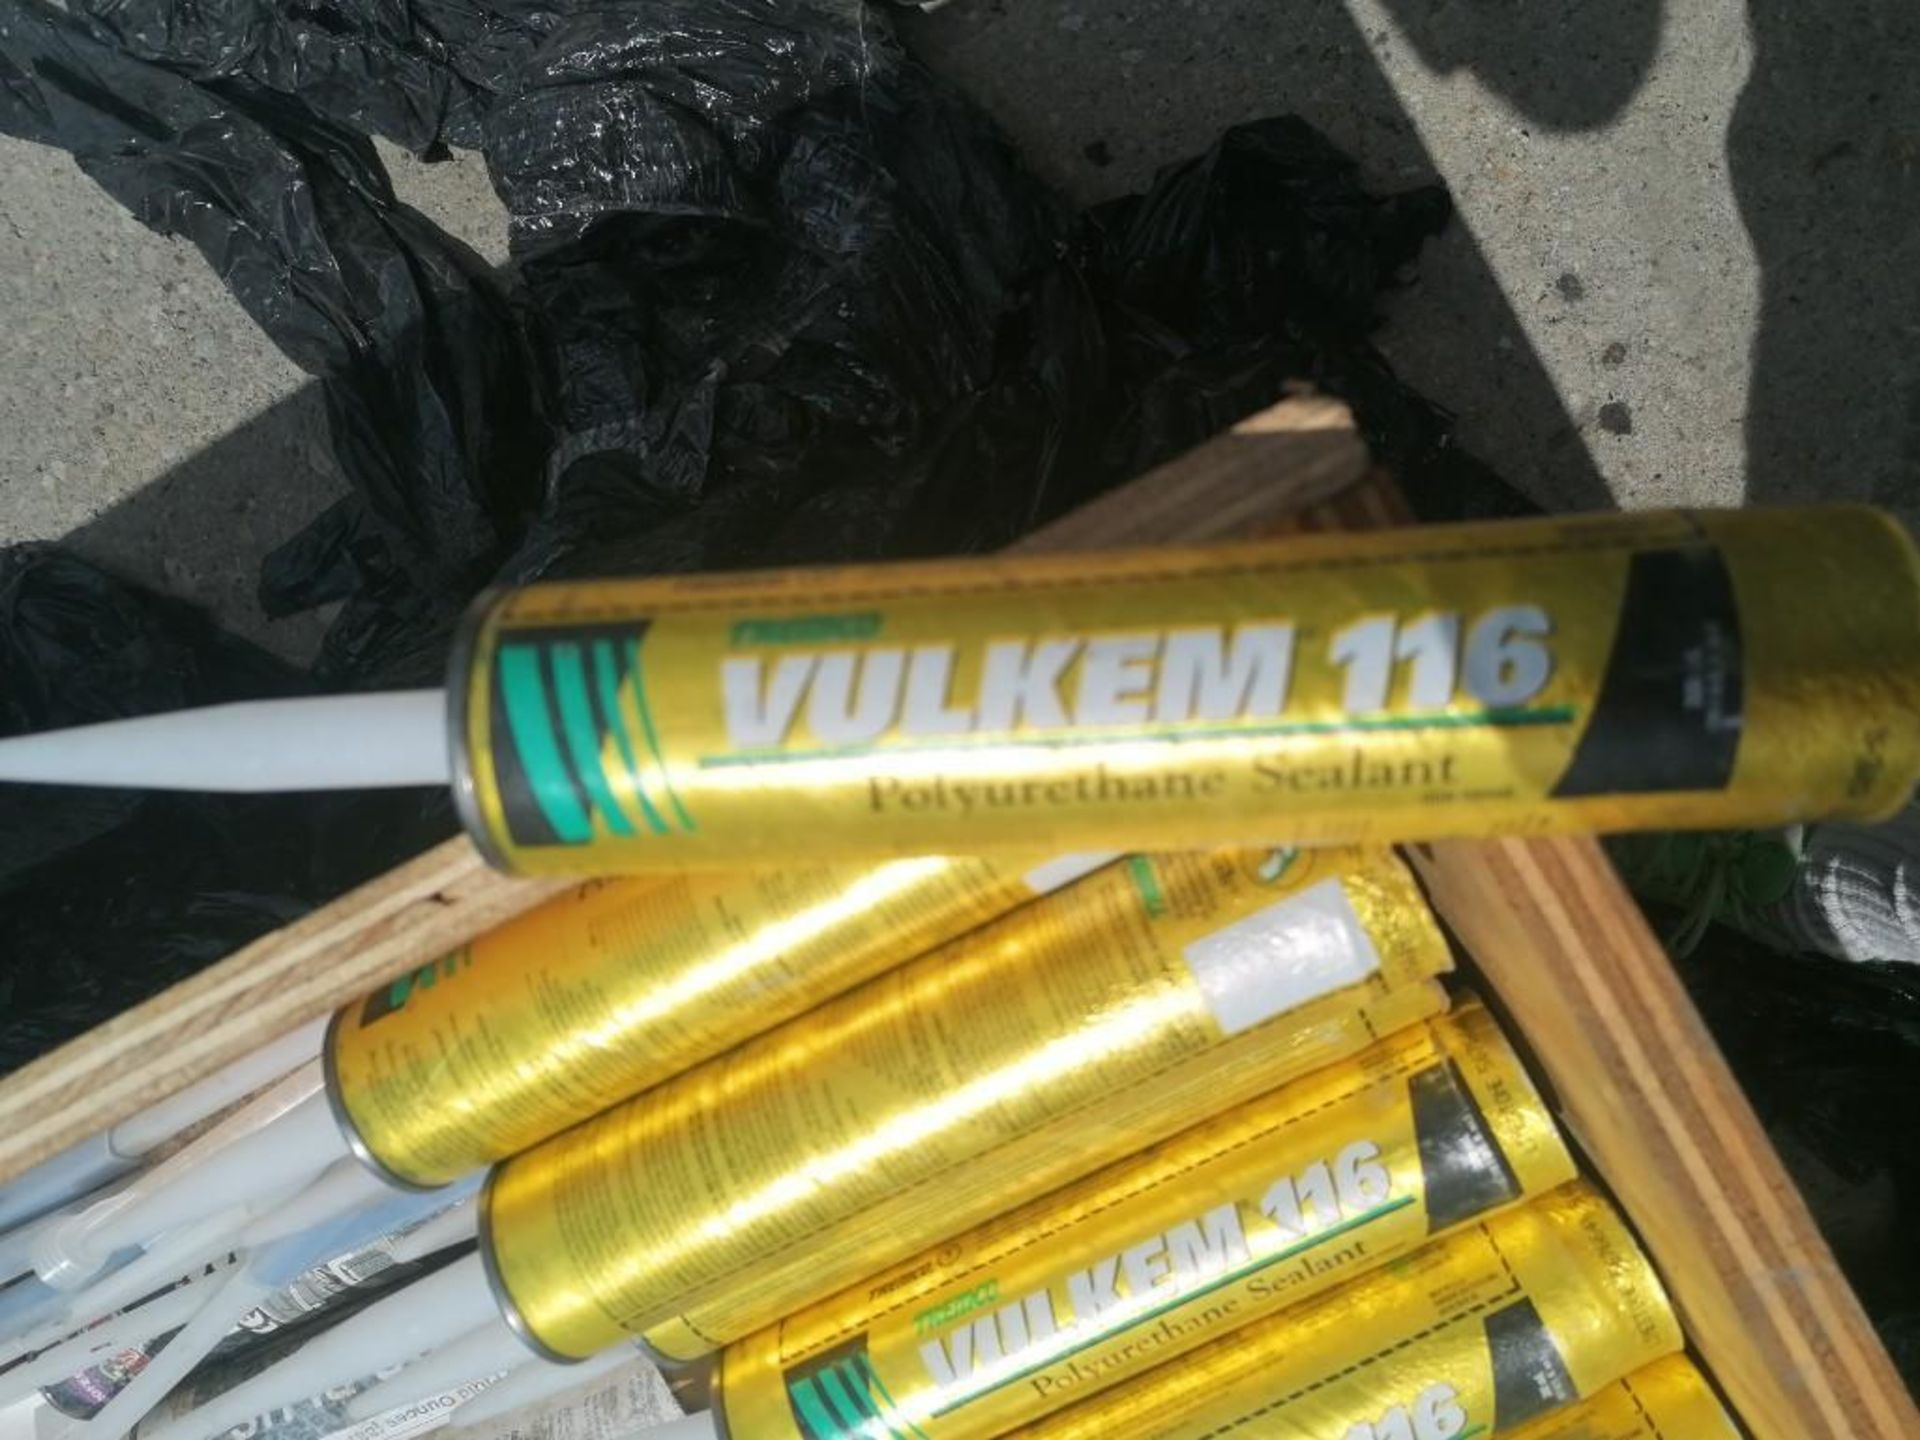 Lot 1036 - (87) Vulkem 116 Polyurethane Sealant. Located at 301 E Henry Street, Mt. Pleasant, IA 52641.